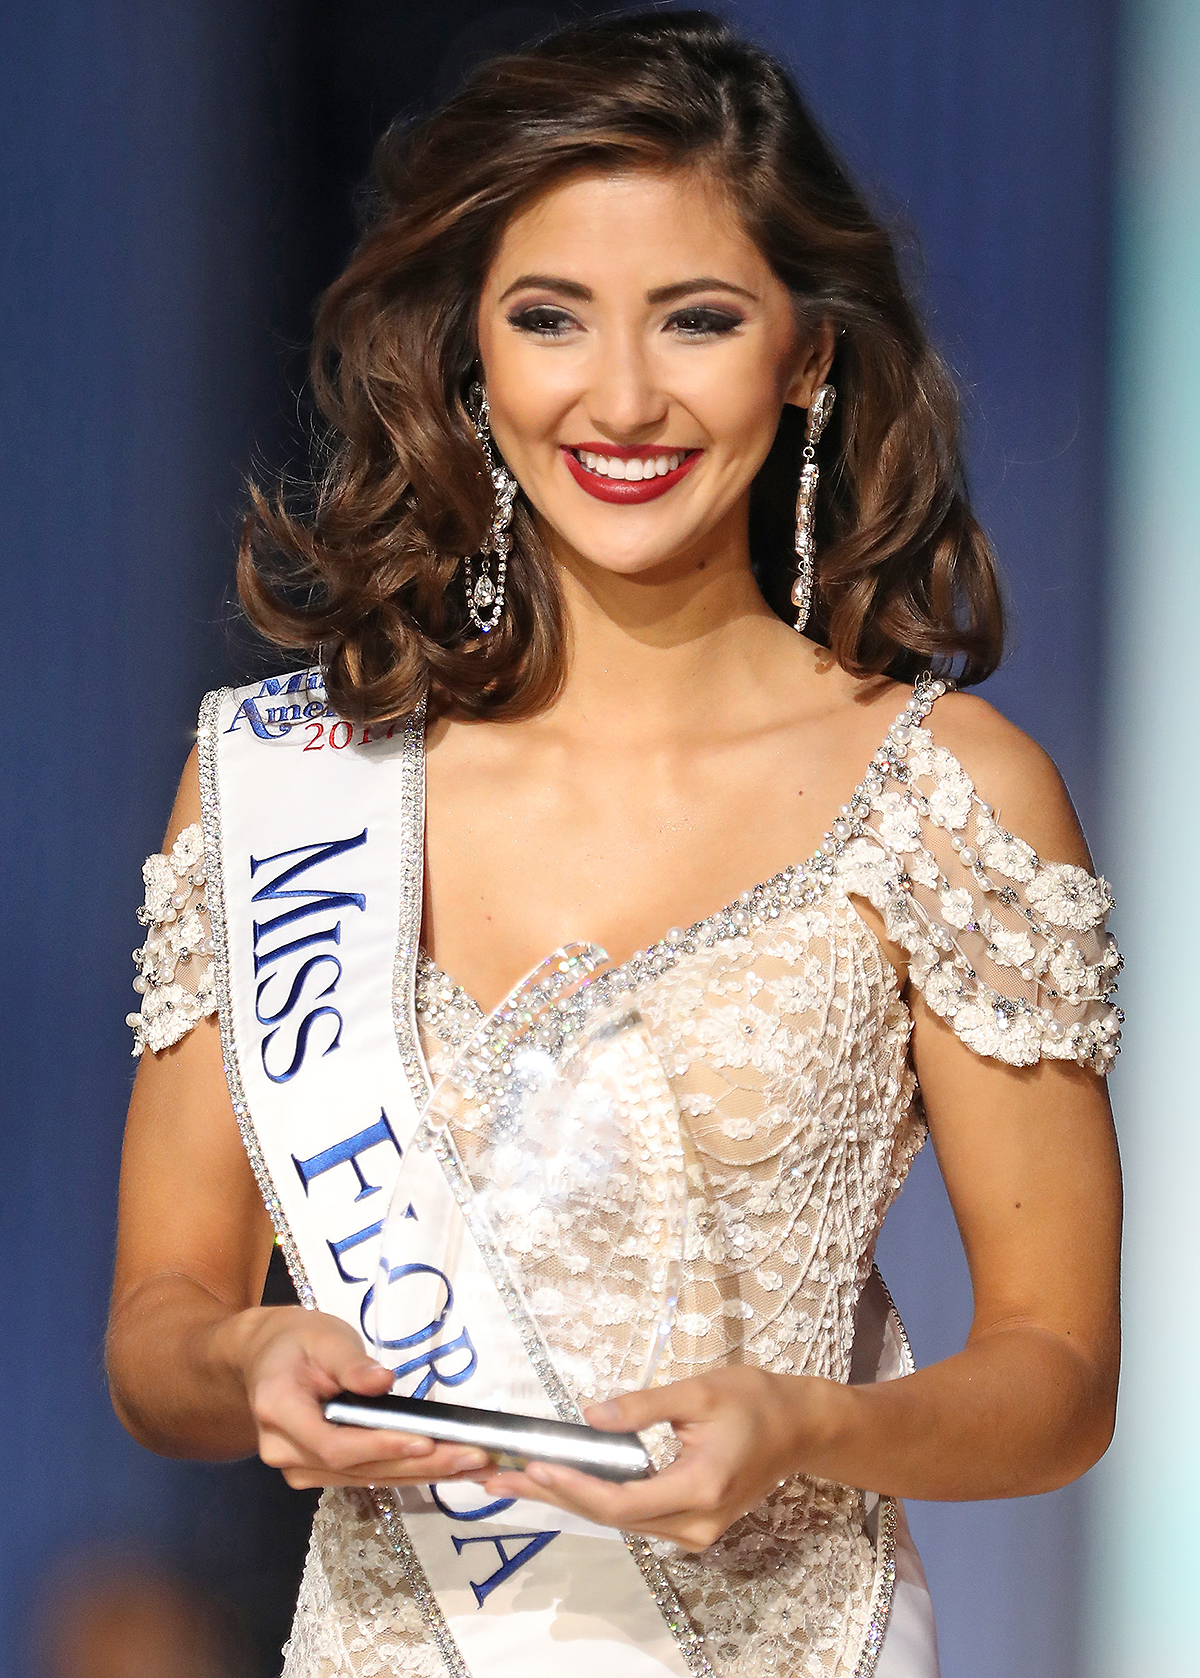 Day 3 of the 2018 Miss America Preliminary Winners in Atlantic City